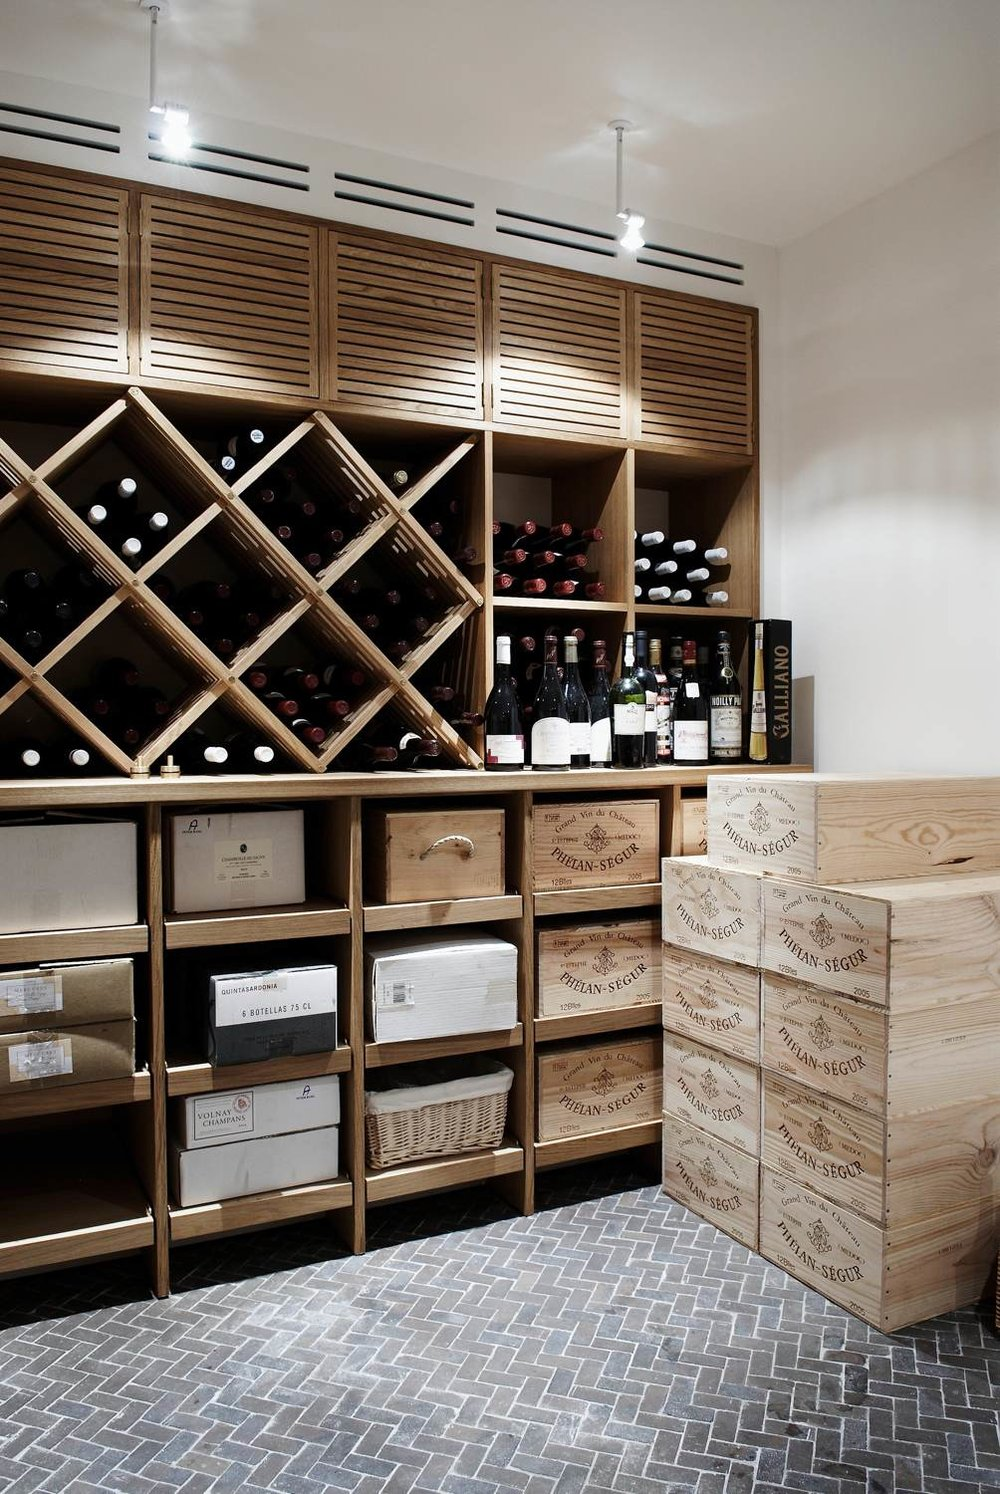 legio_projects_hellerup_4_winecellar.jpg